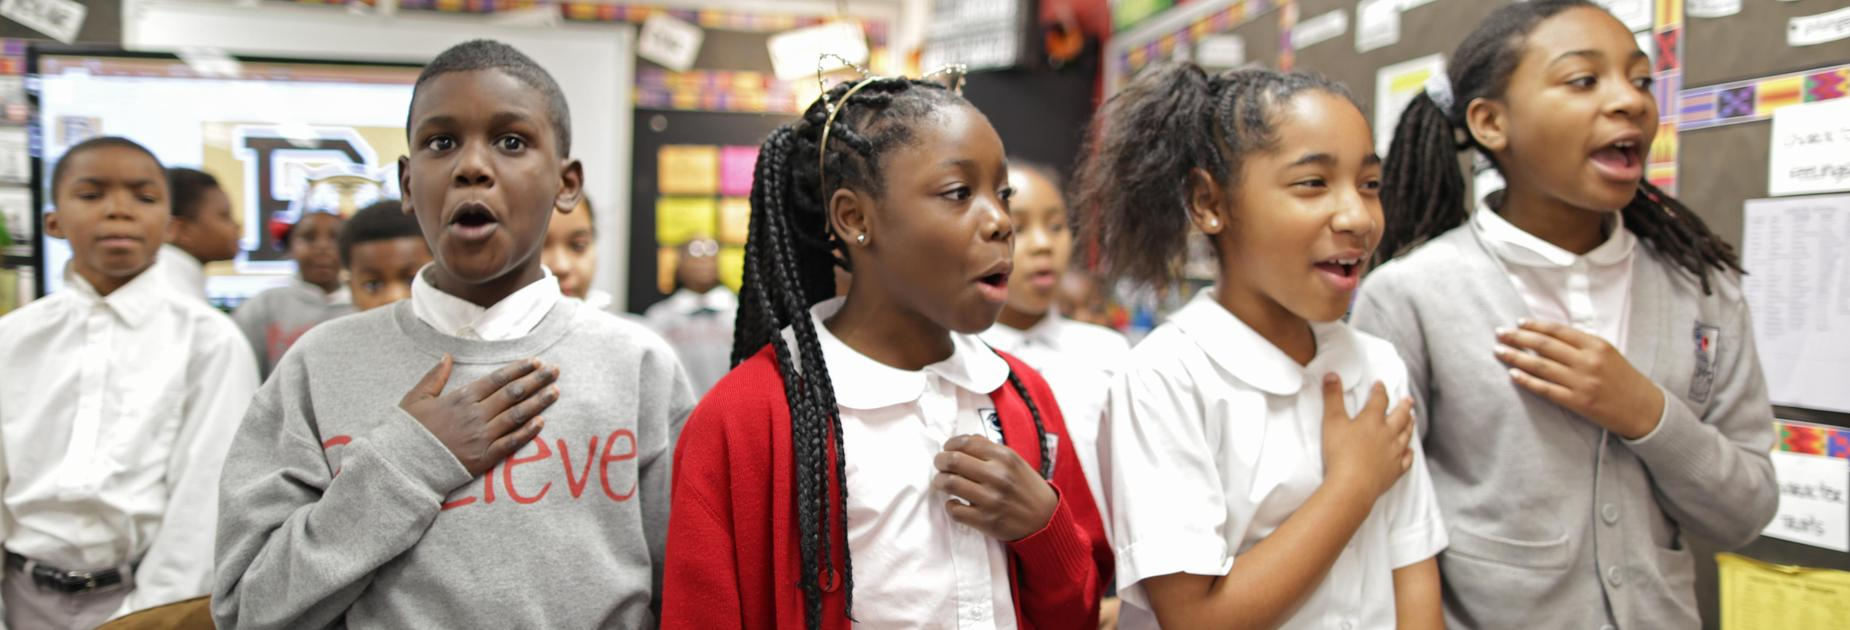 KIPP Believe students saying the pledge